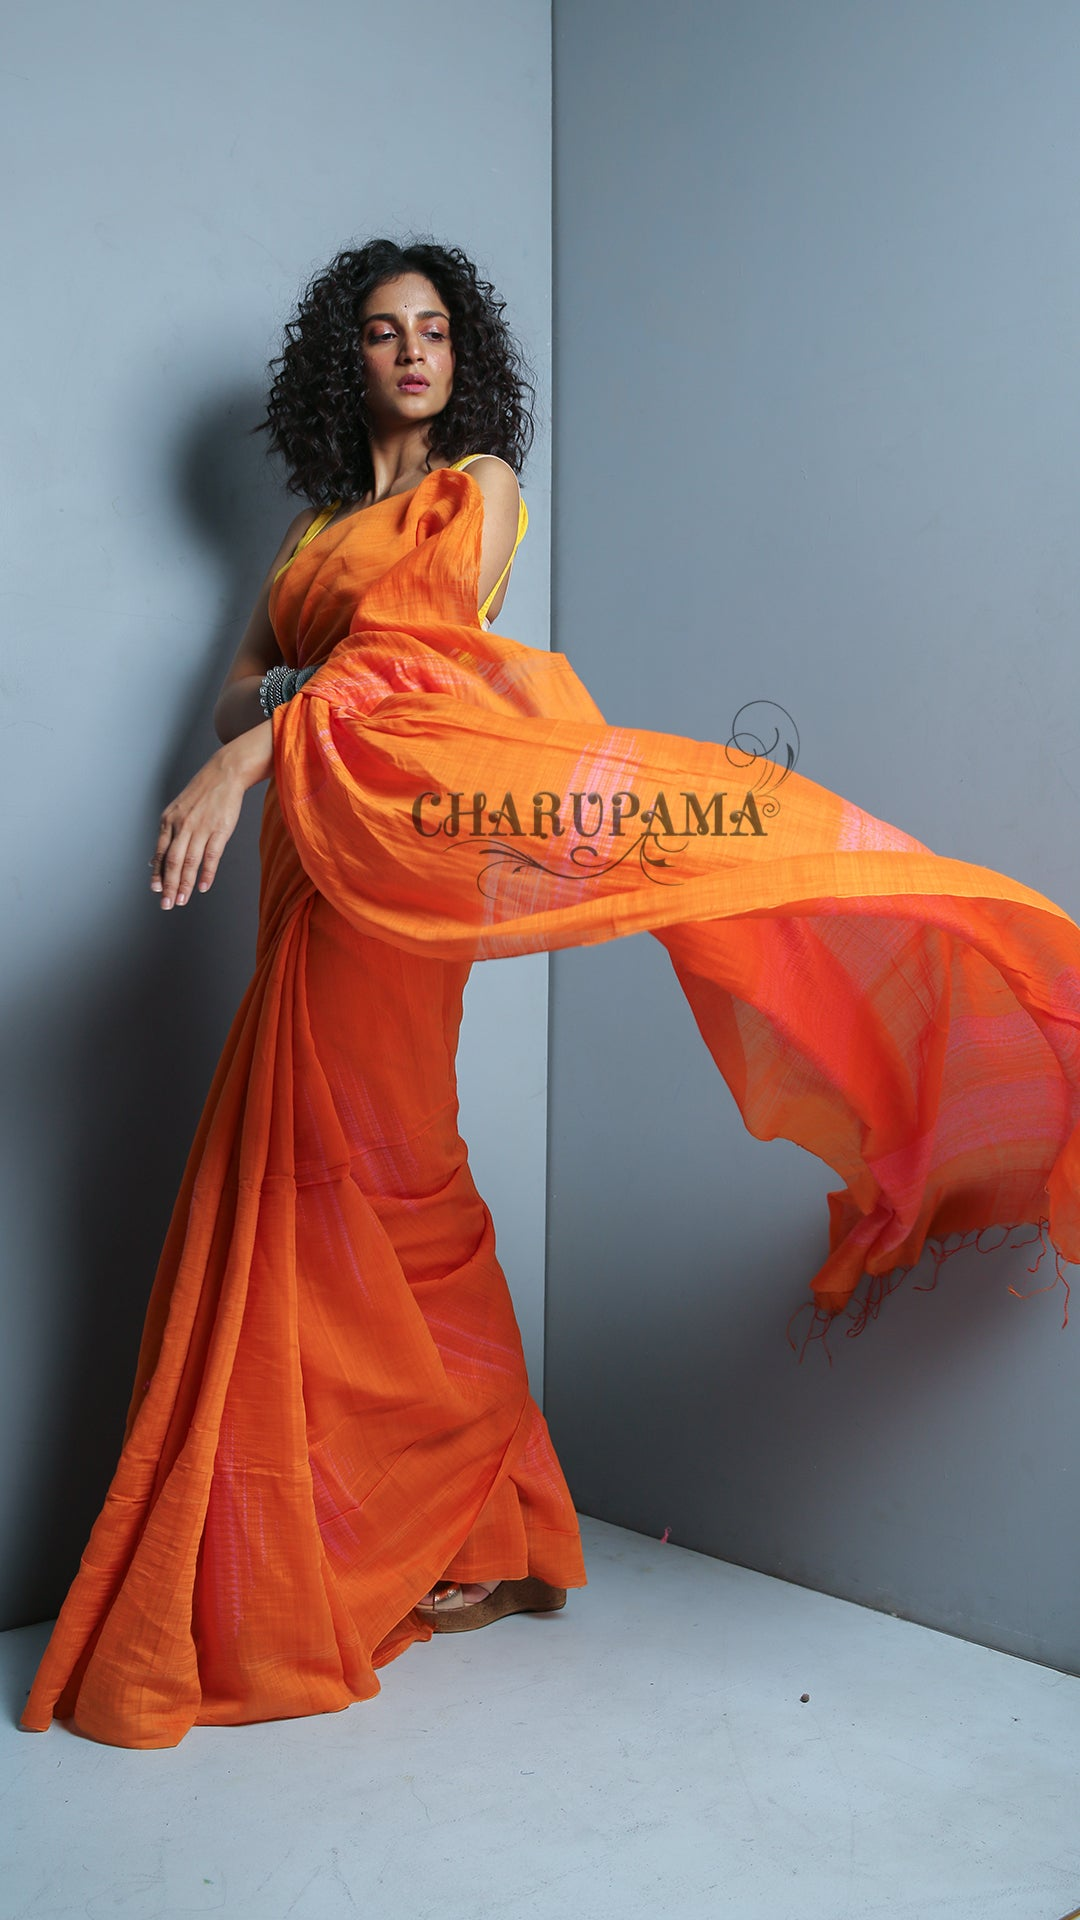 This Bright Orange Shade Cotton Silk Saree Is As Light As Feather. Look Elegant In This Fade Peach Shibori Printed Handwoven Saree - Charupama